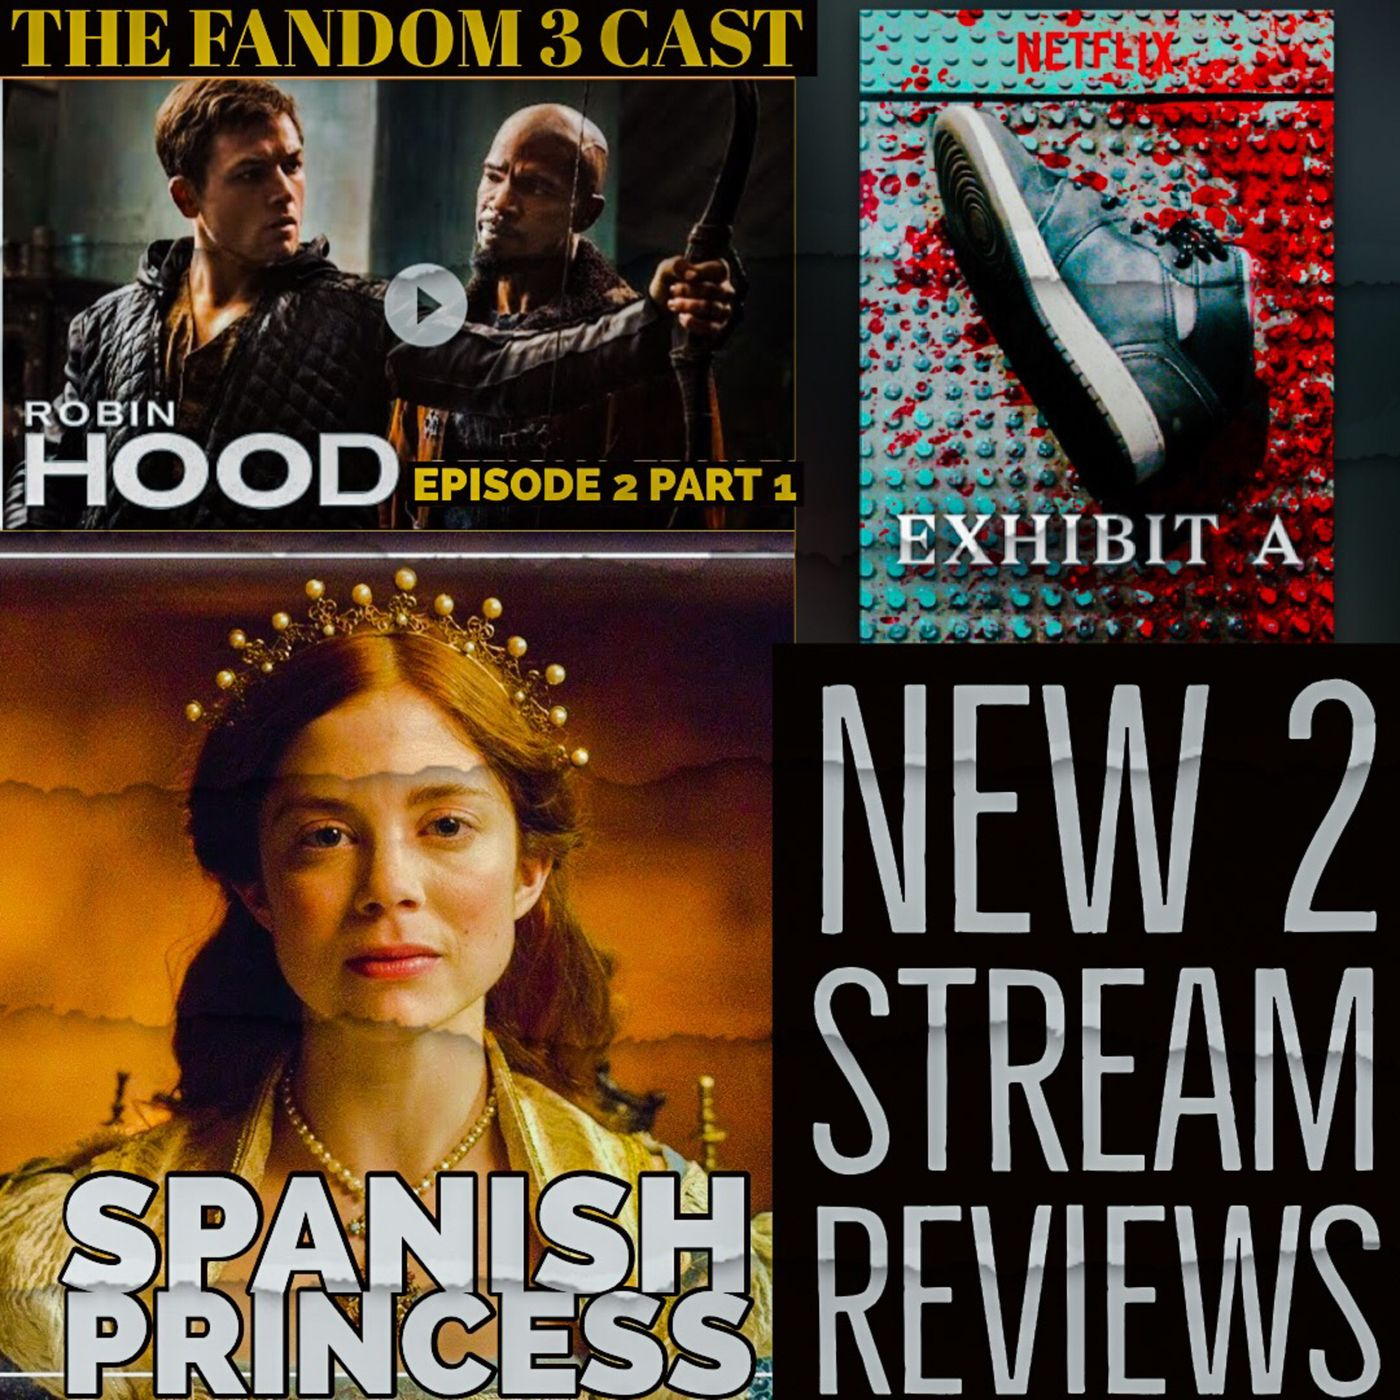 New 2 Stream Reviews - Exhibit A, The Spanish Princess & Robin Hood (episode 2 part 1)